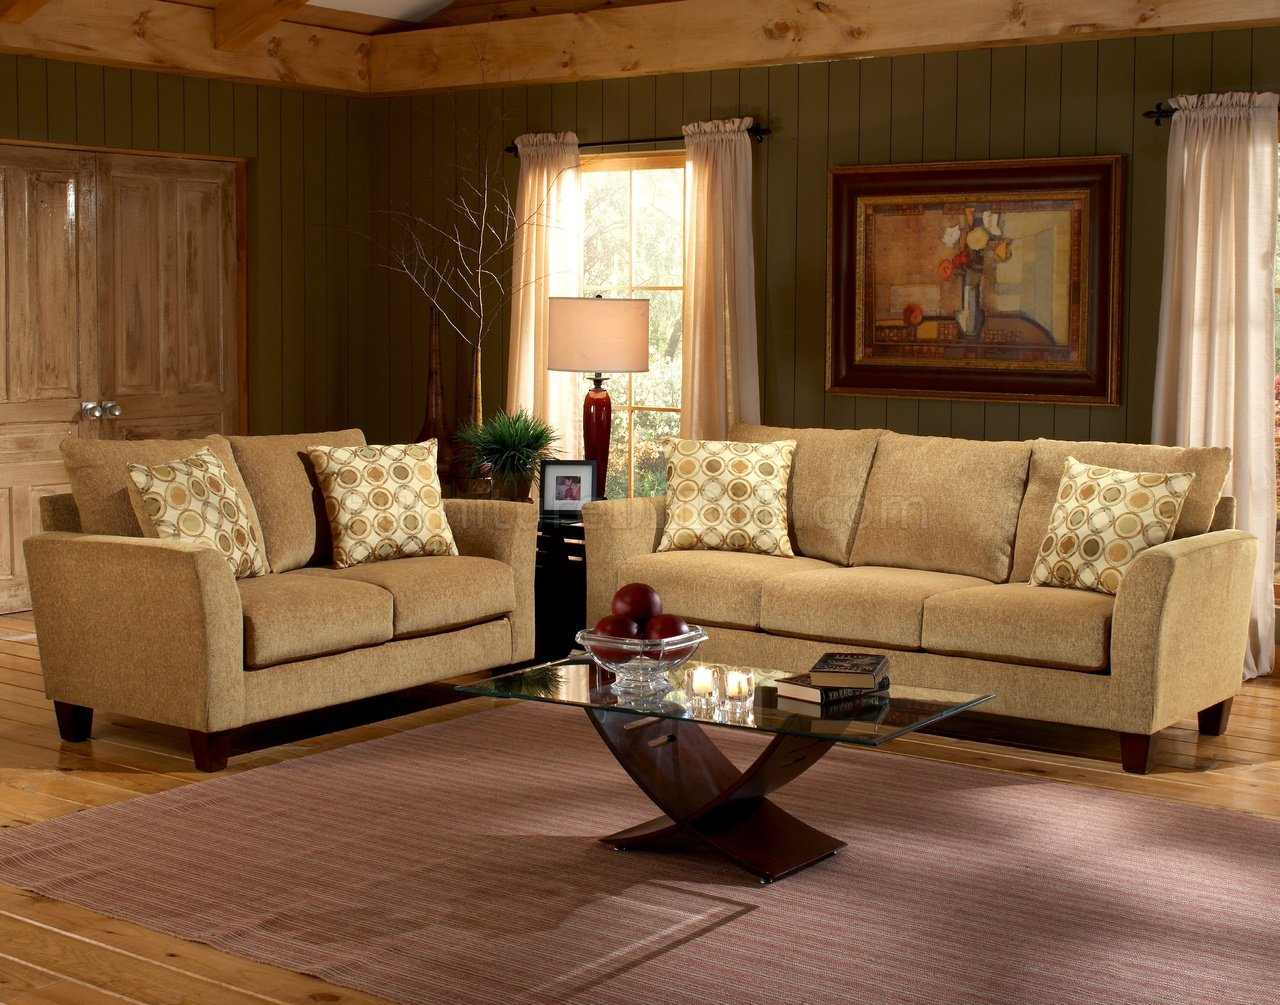 Barton Camel Fabric Casual Living Room Sofa & Loveseat Set Regarding Sofas And Chairs (View 3 of 15)